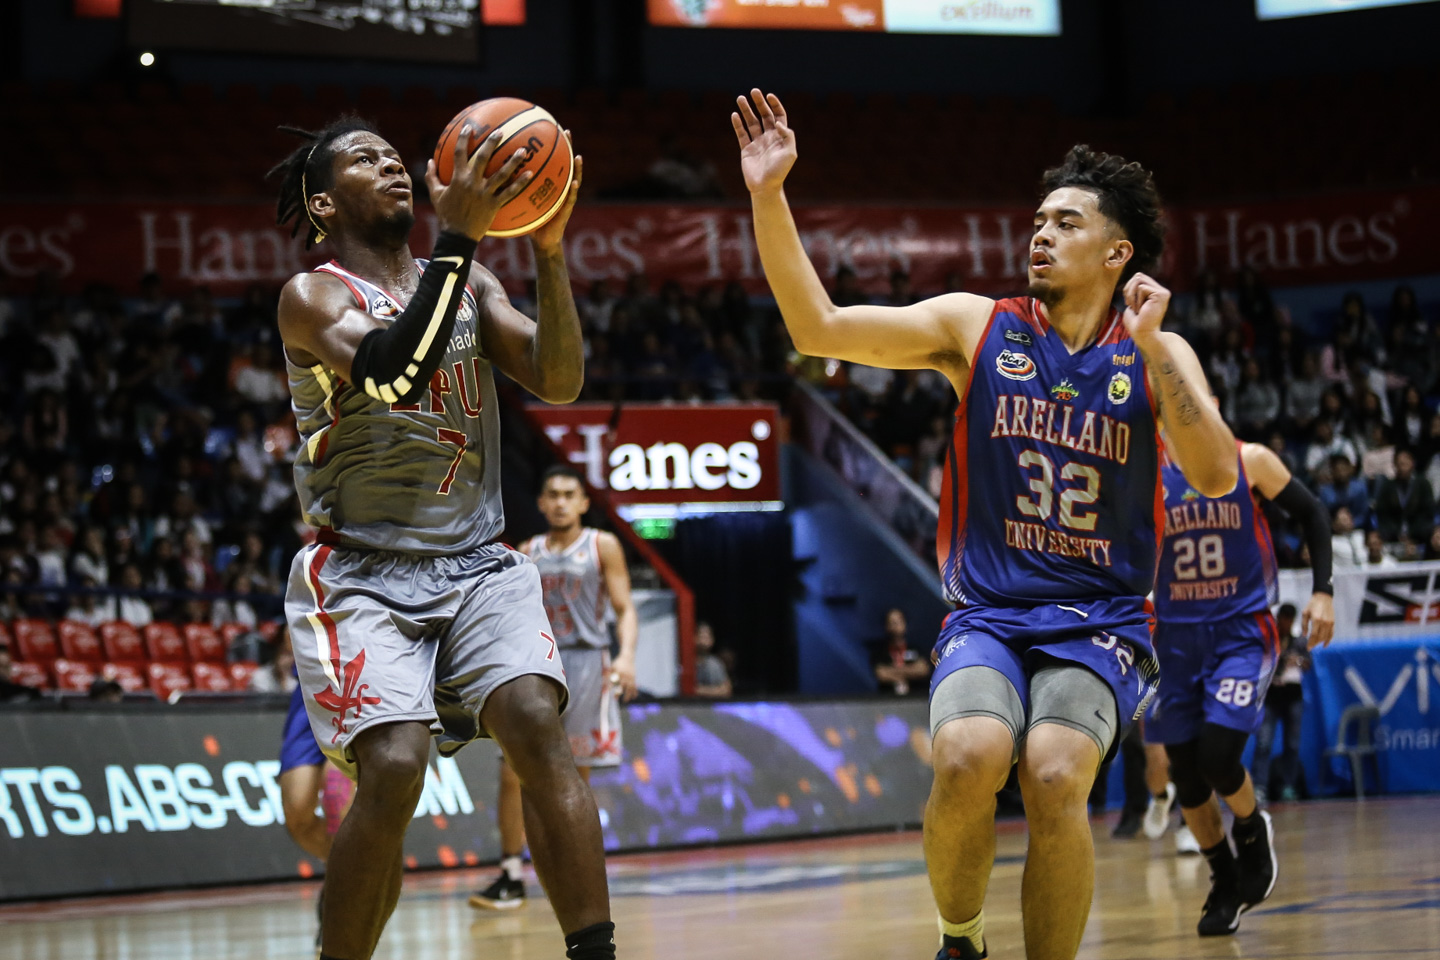 NCAA: Lyceum stretches perfect run to 5